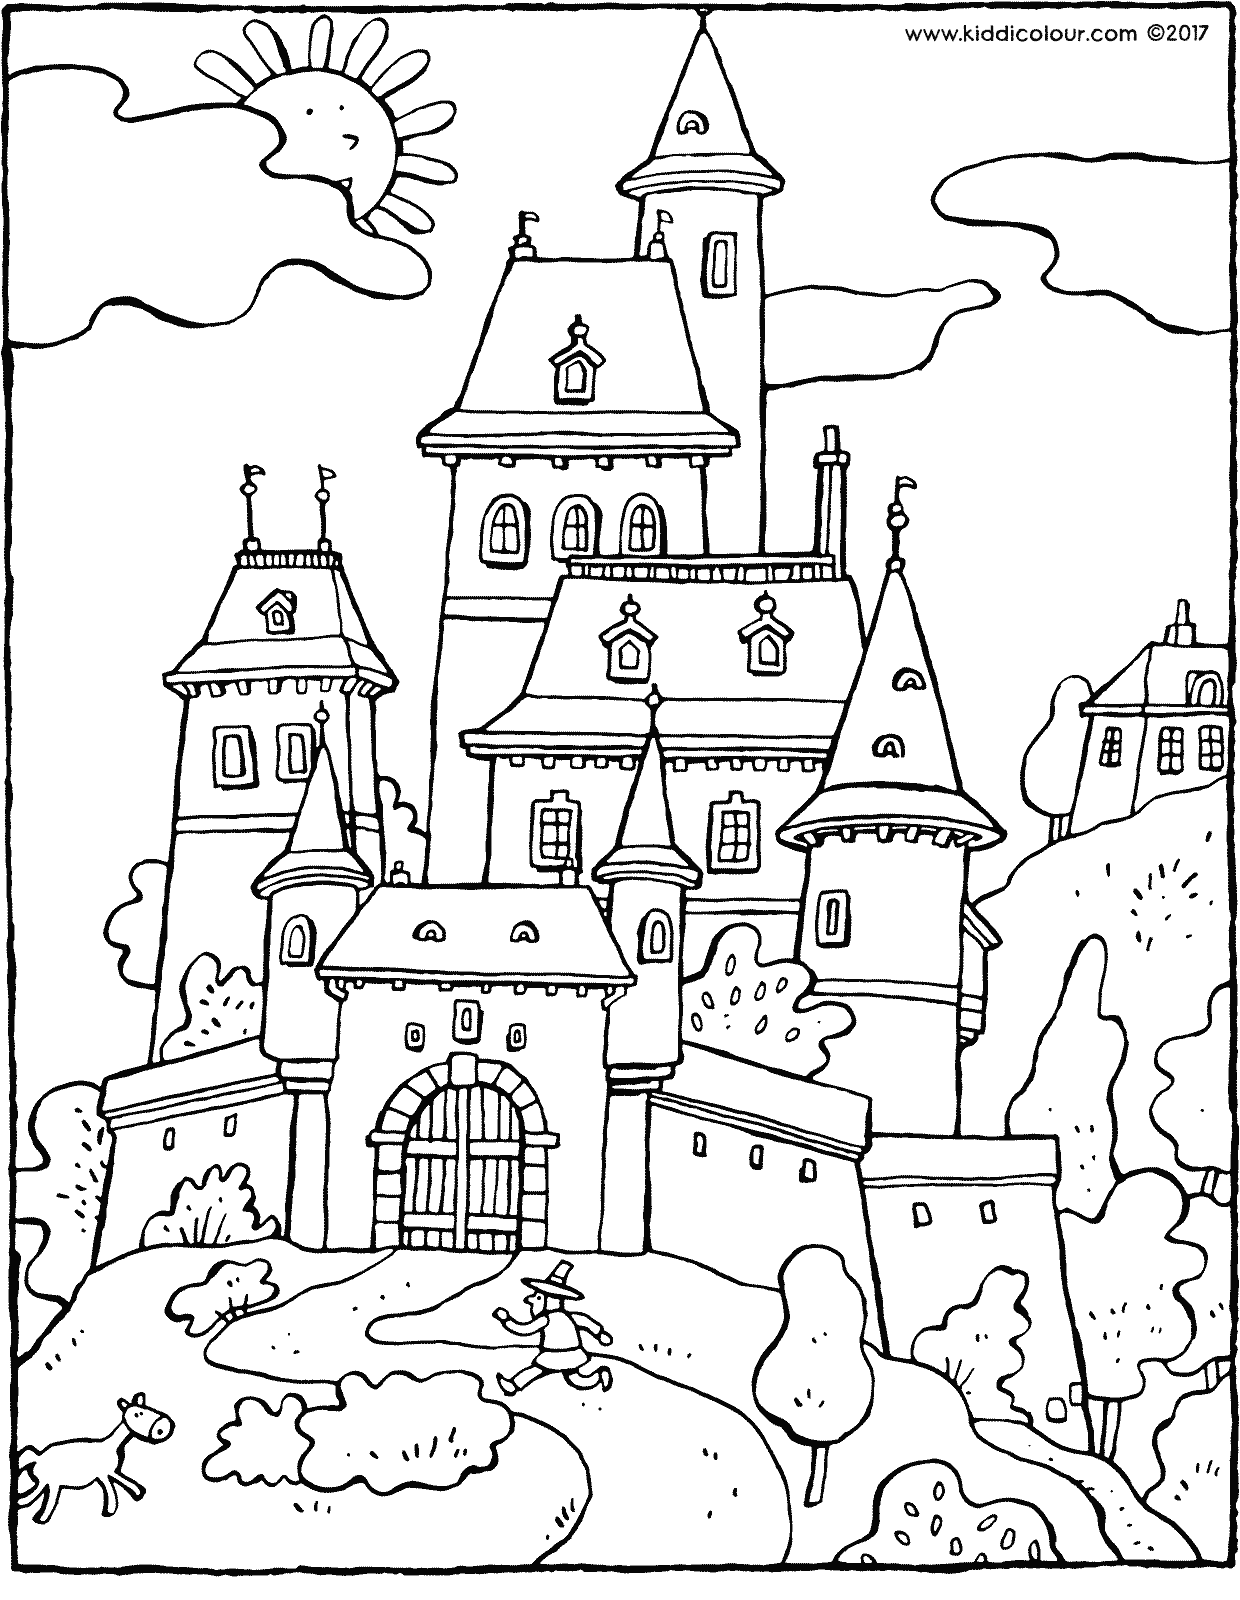 fairy-tale castle colouring page drawing picture 01H